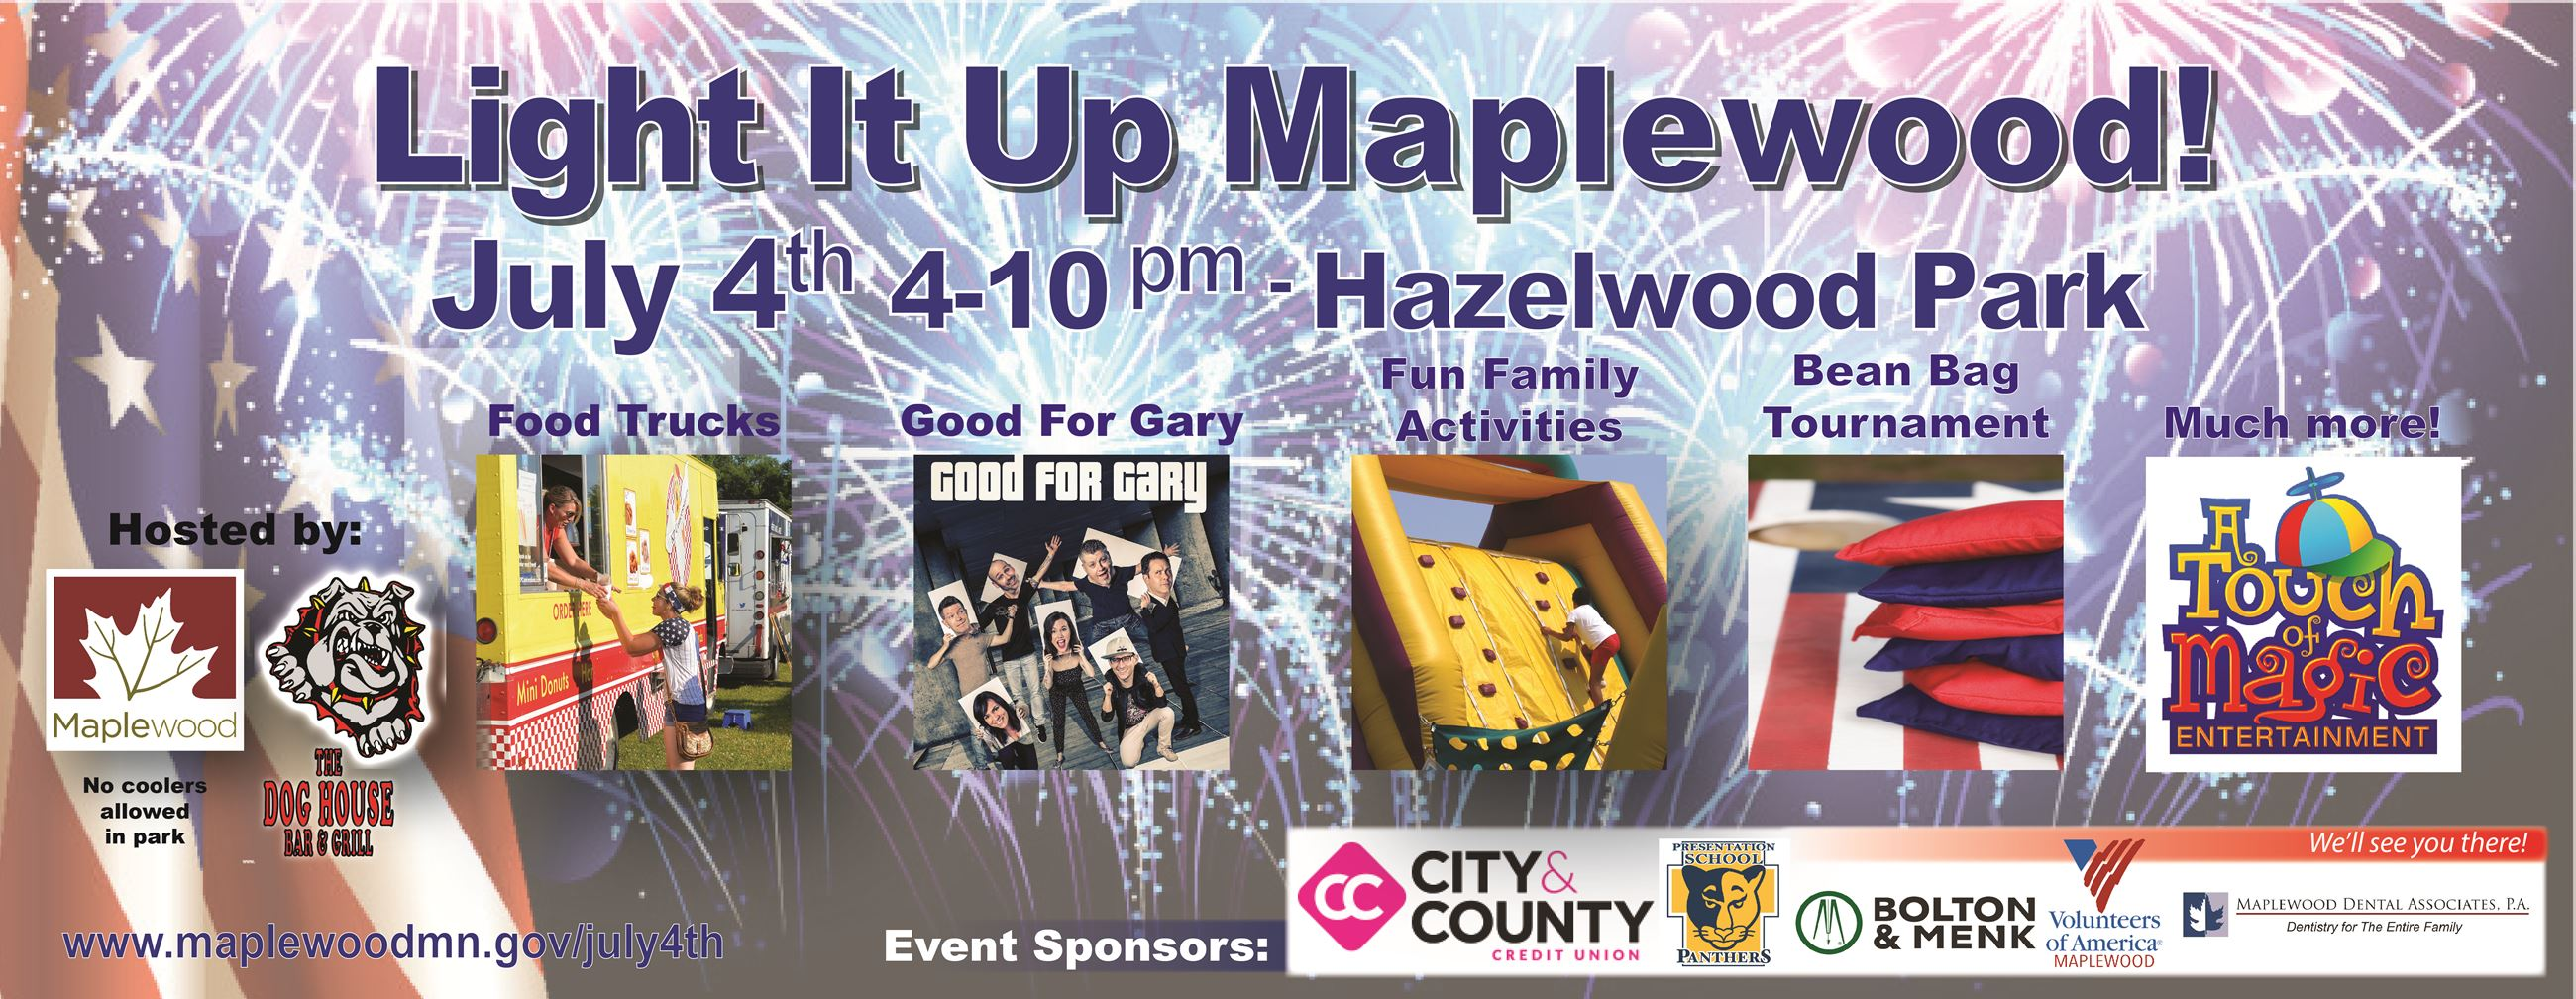 Light it up Maplewood! July 4th from 4 to 10 pm in Hazlewood Park.